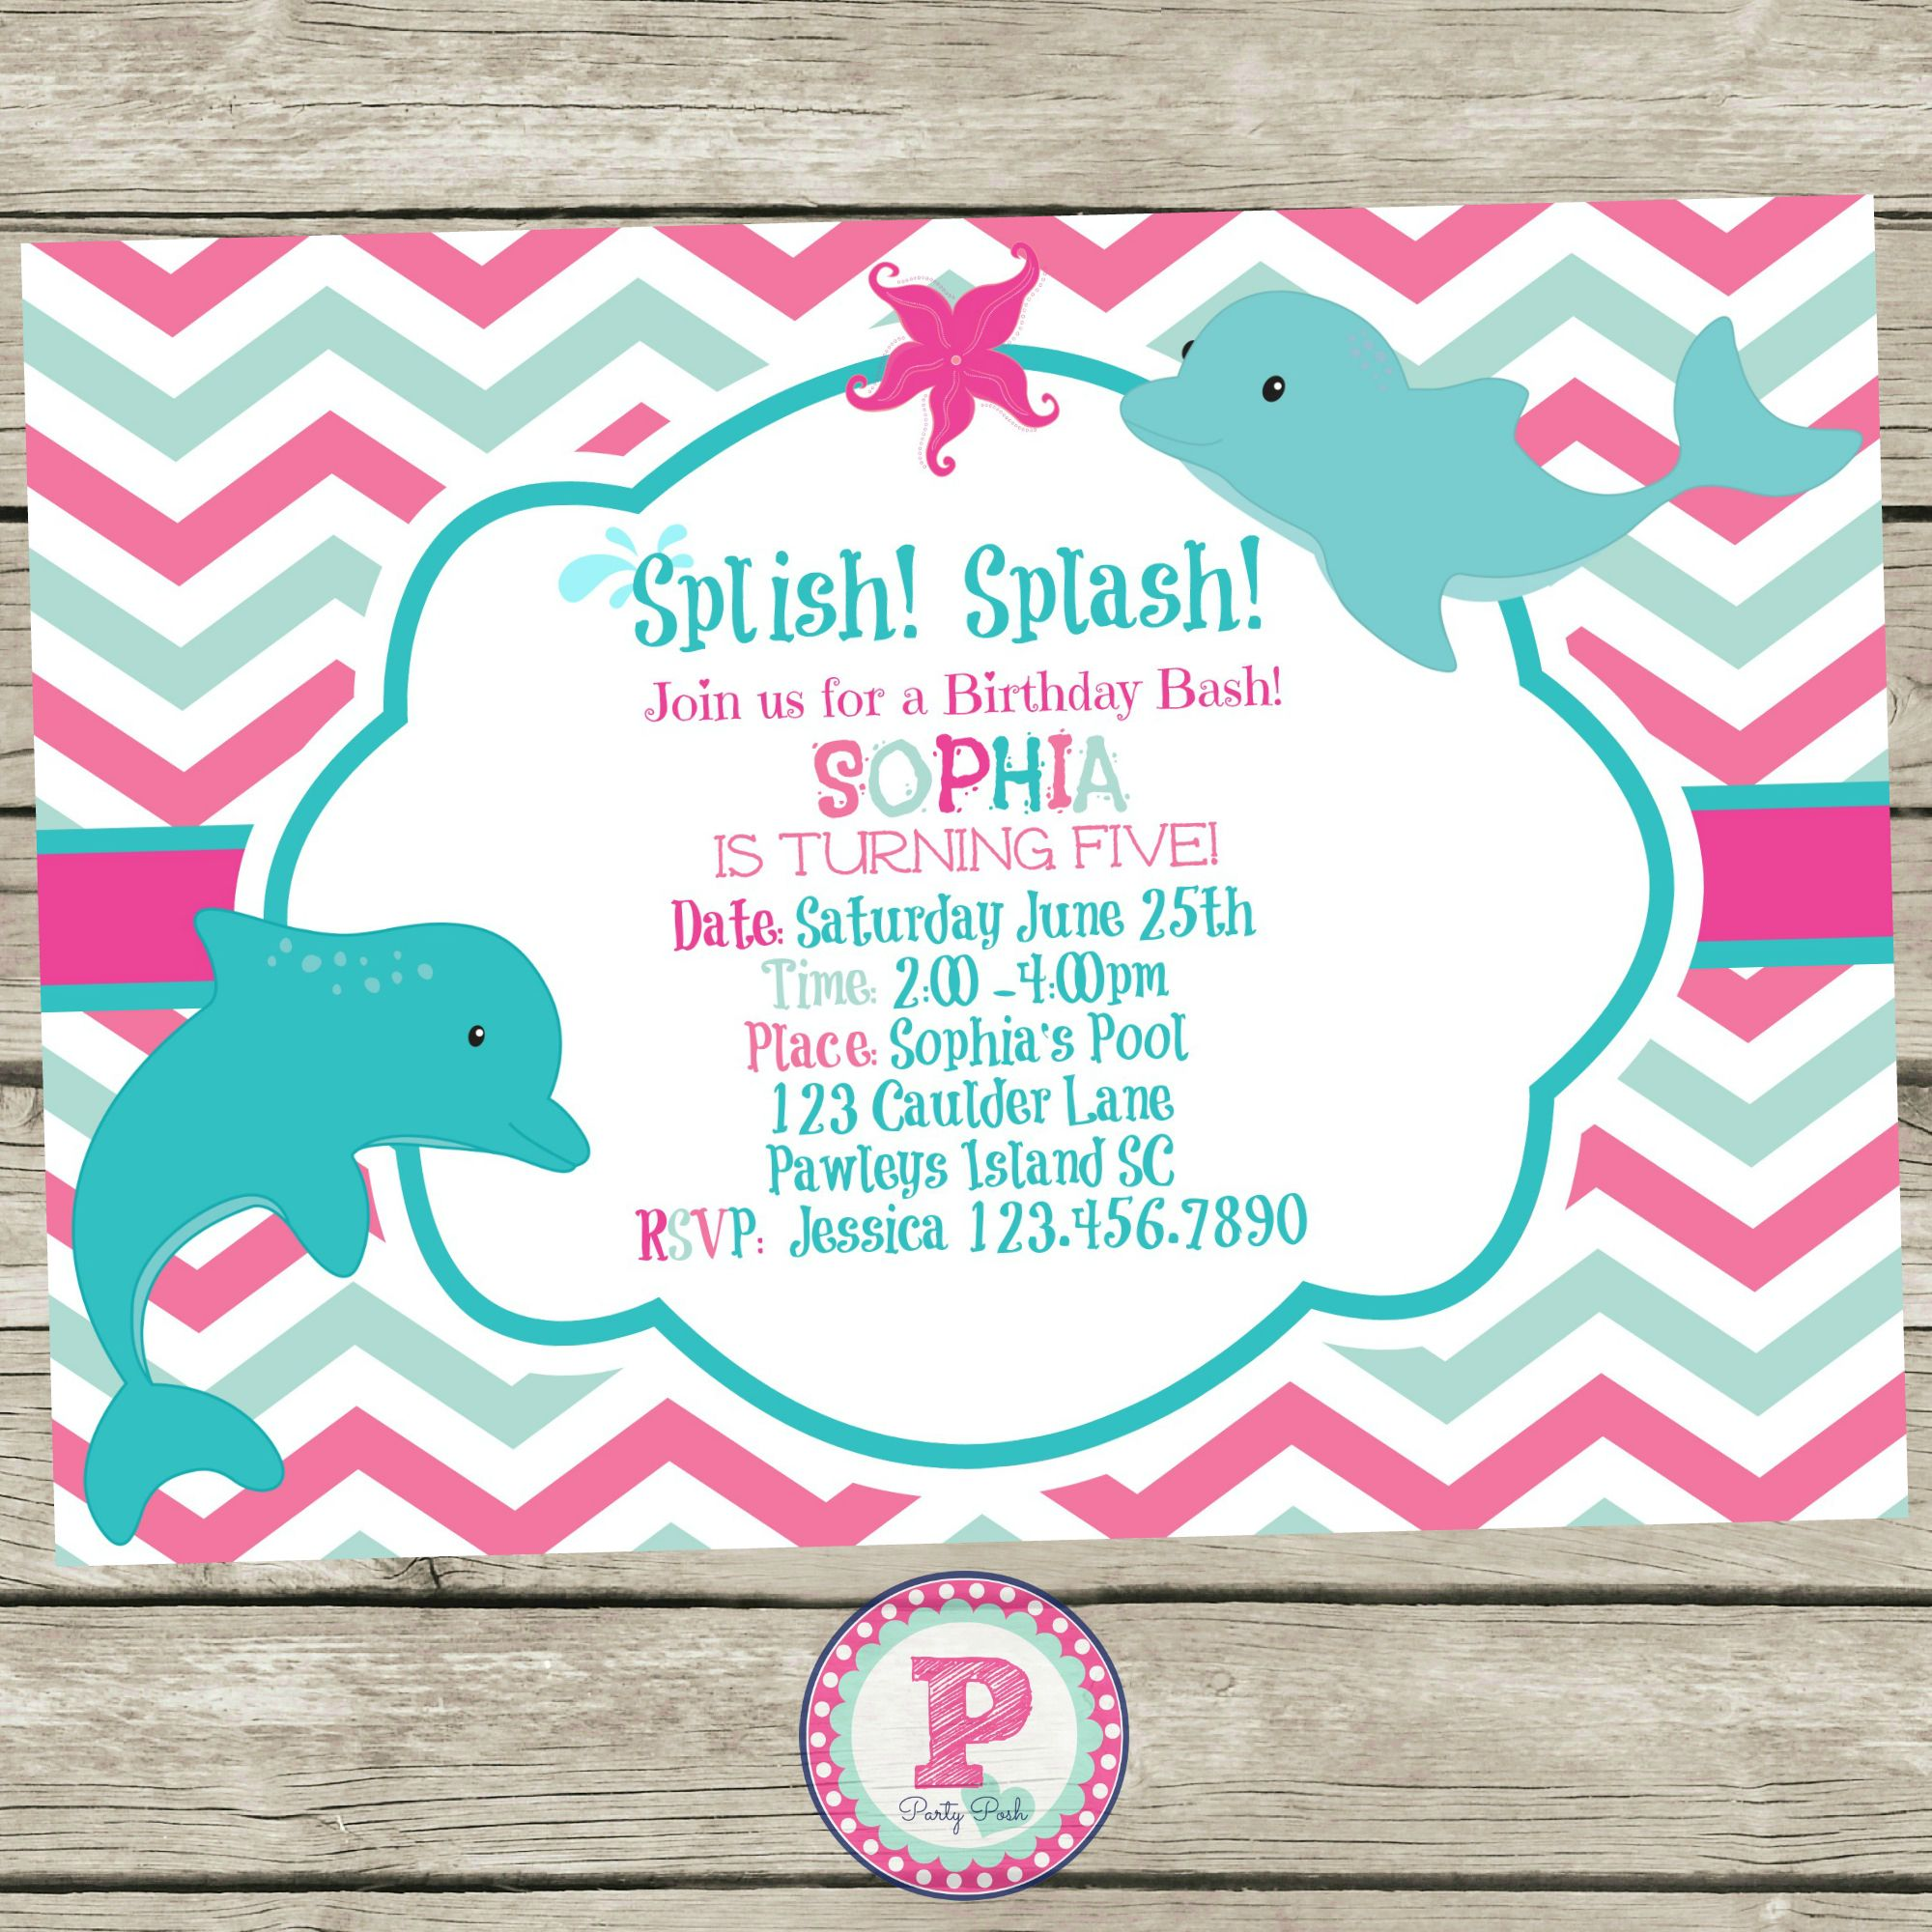 Dolphin Pool Party Invitation perfect for your next birthday bash ...